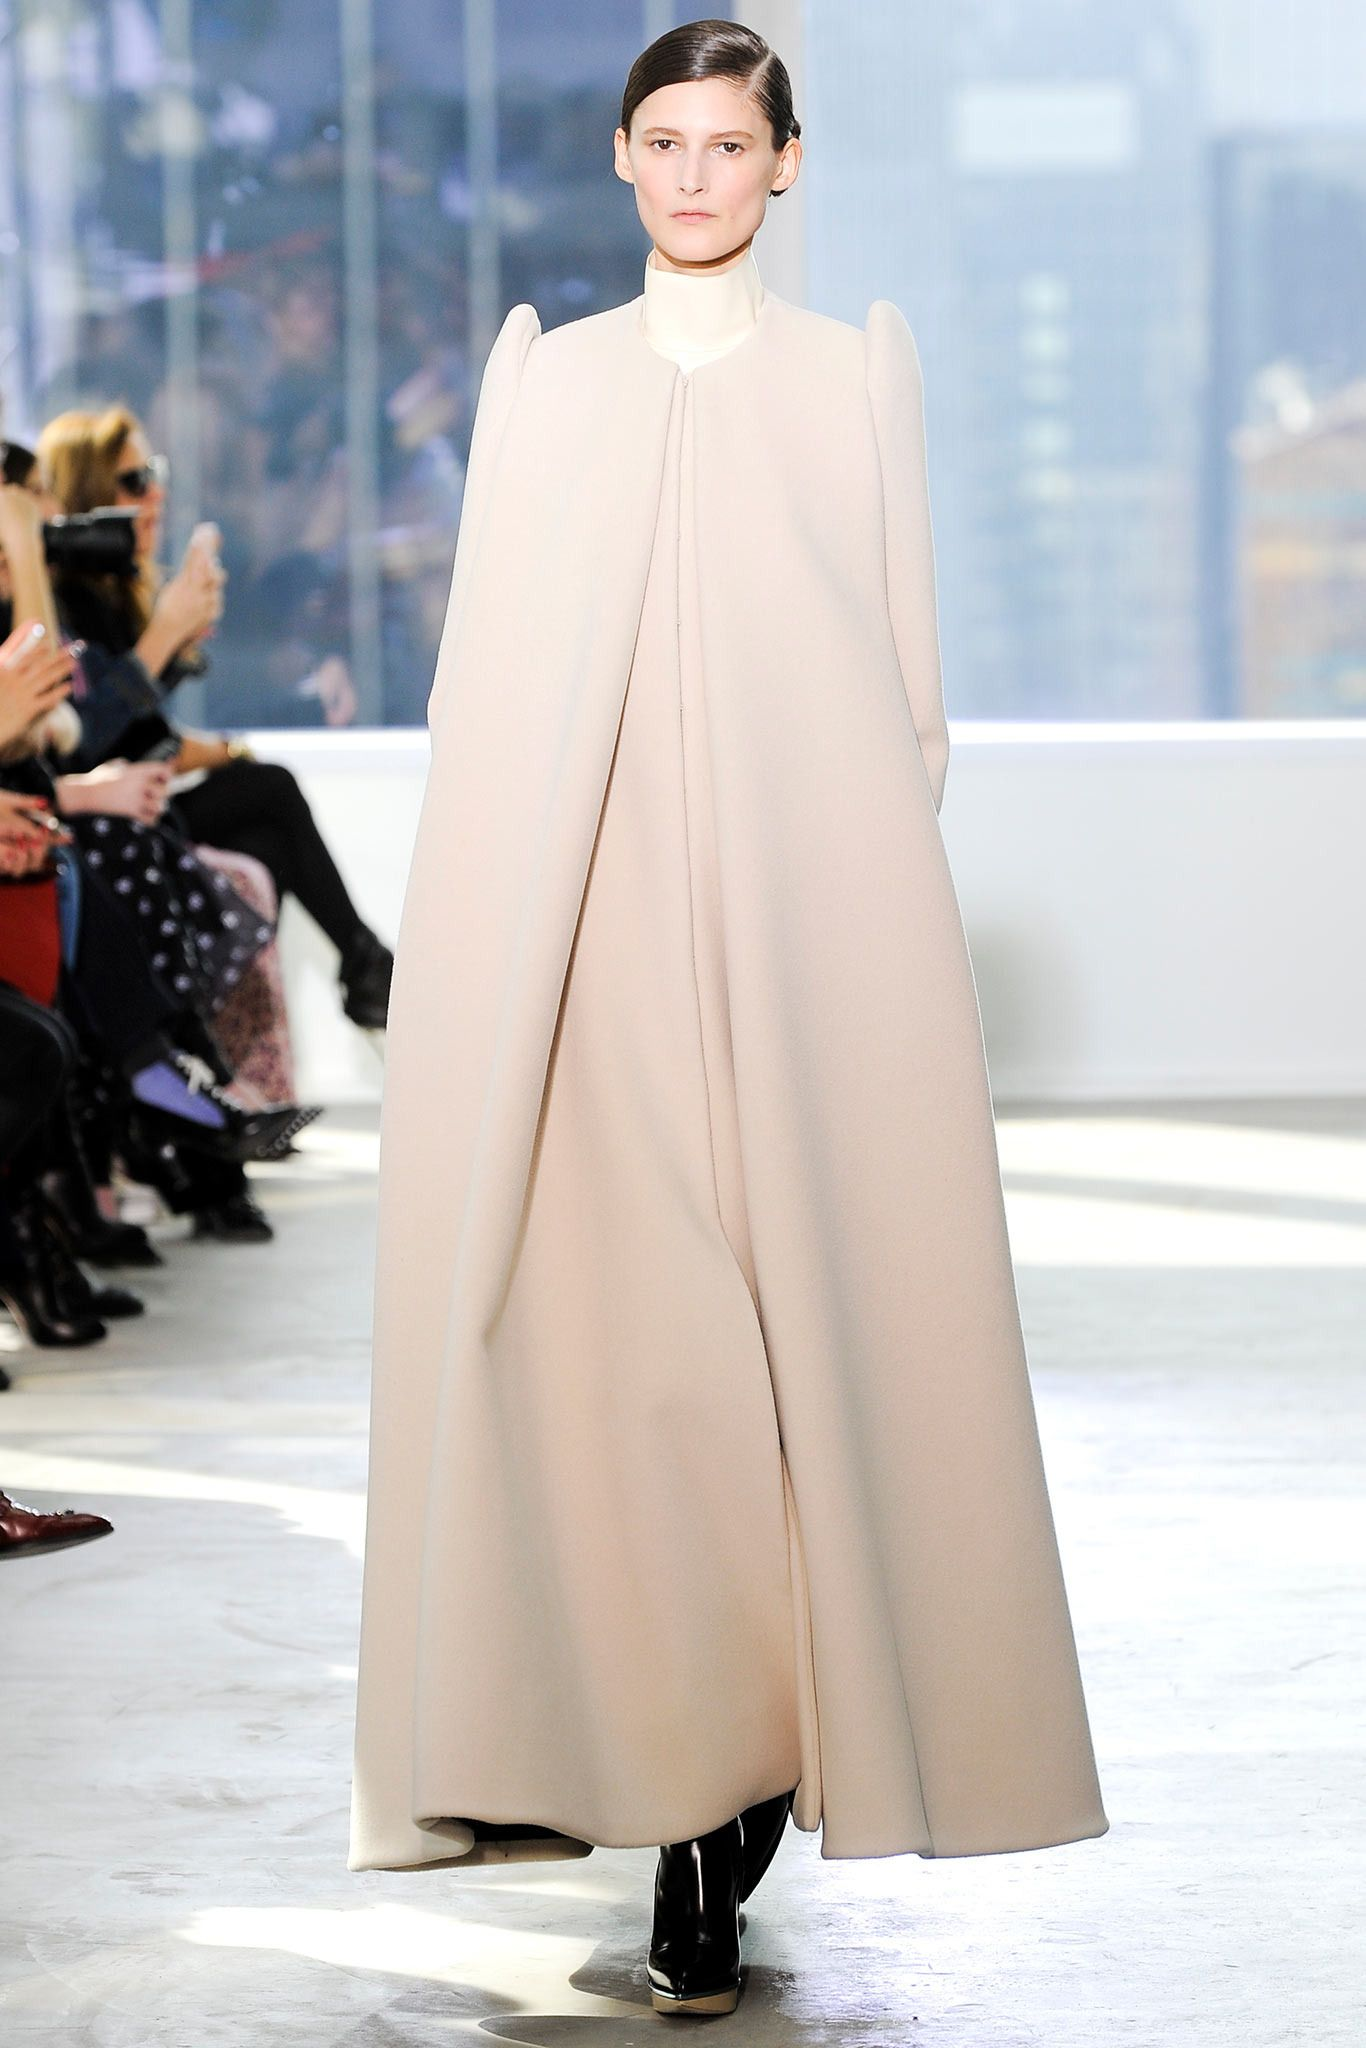 Show Review: Delpozo Fall 2014 recommend to wear in autumn in 2019